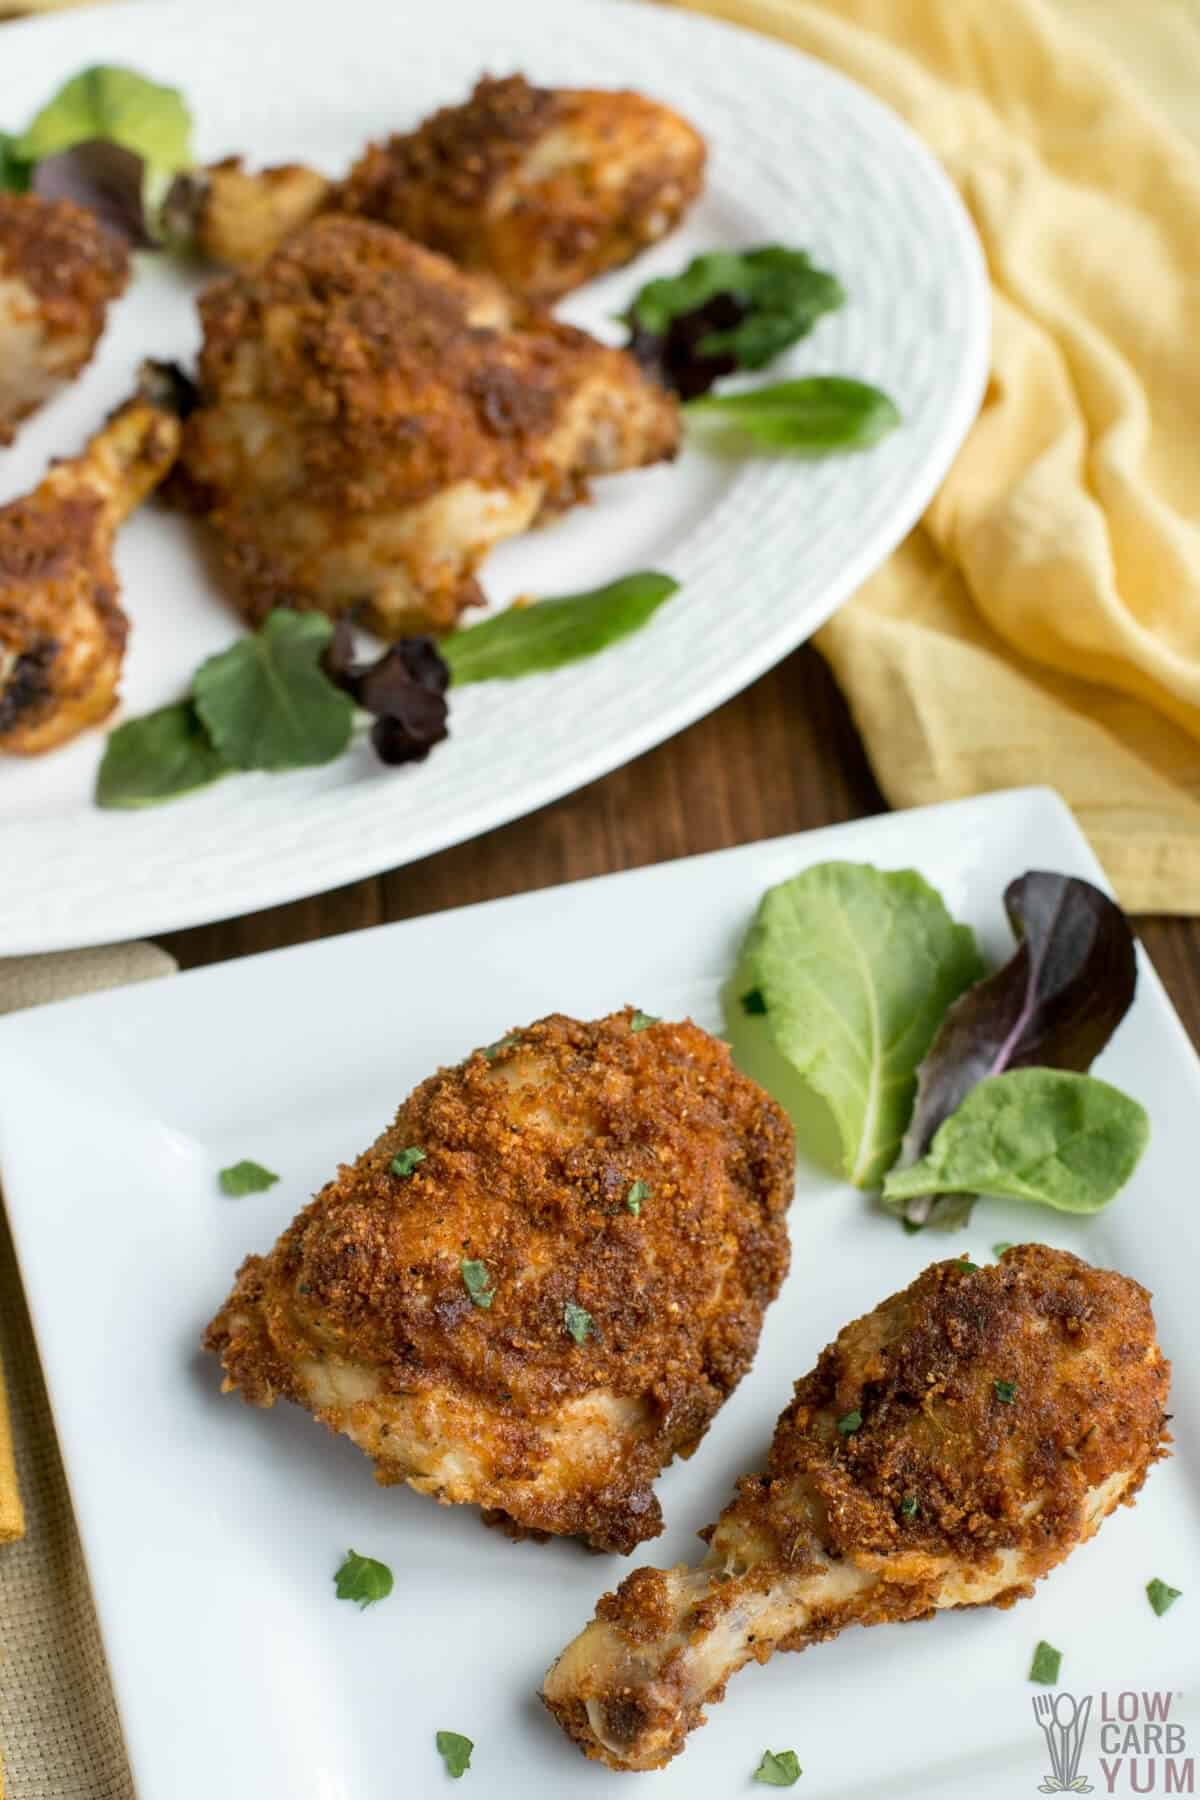 keto fried chicken made in air fryer or oven with pork rind coating